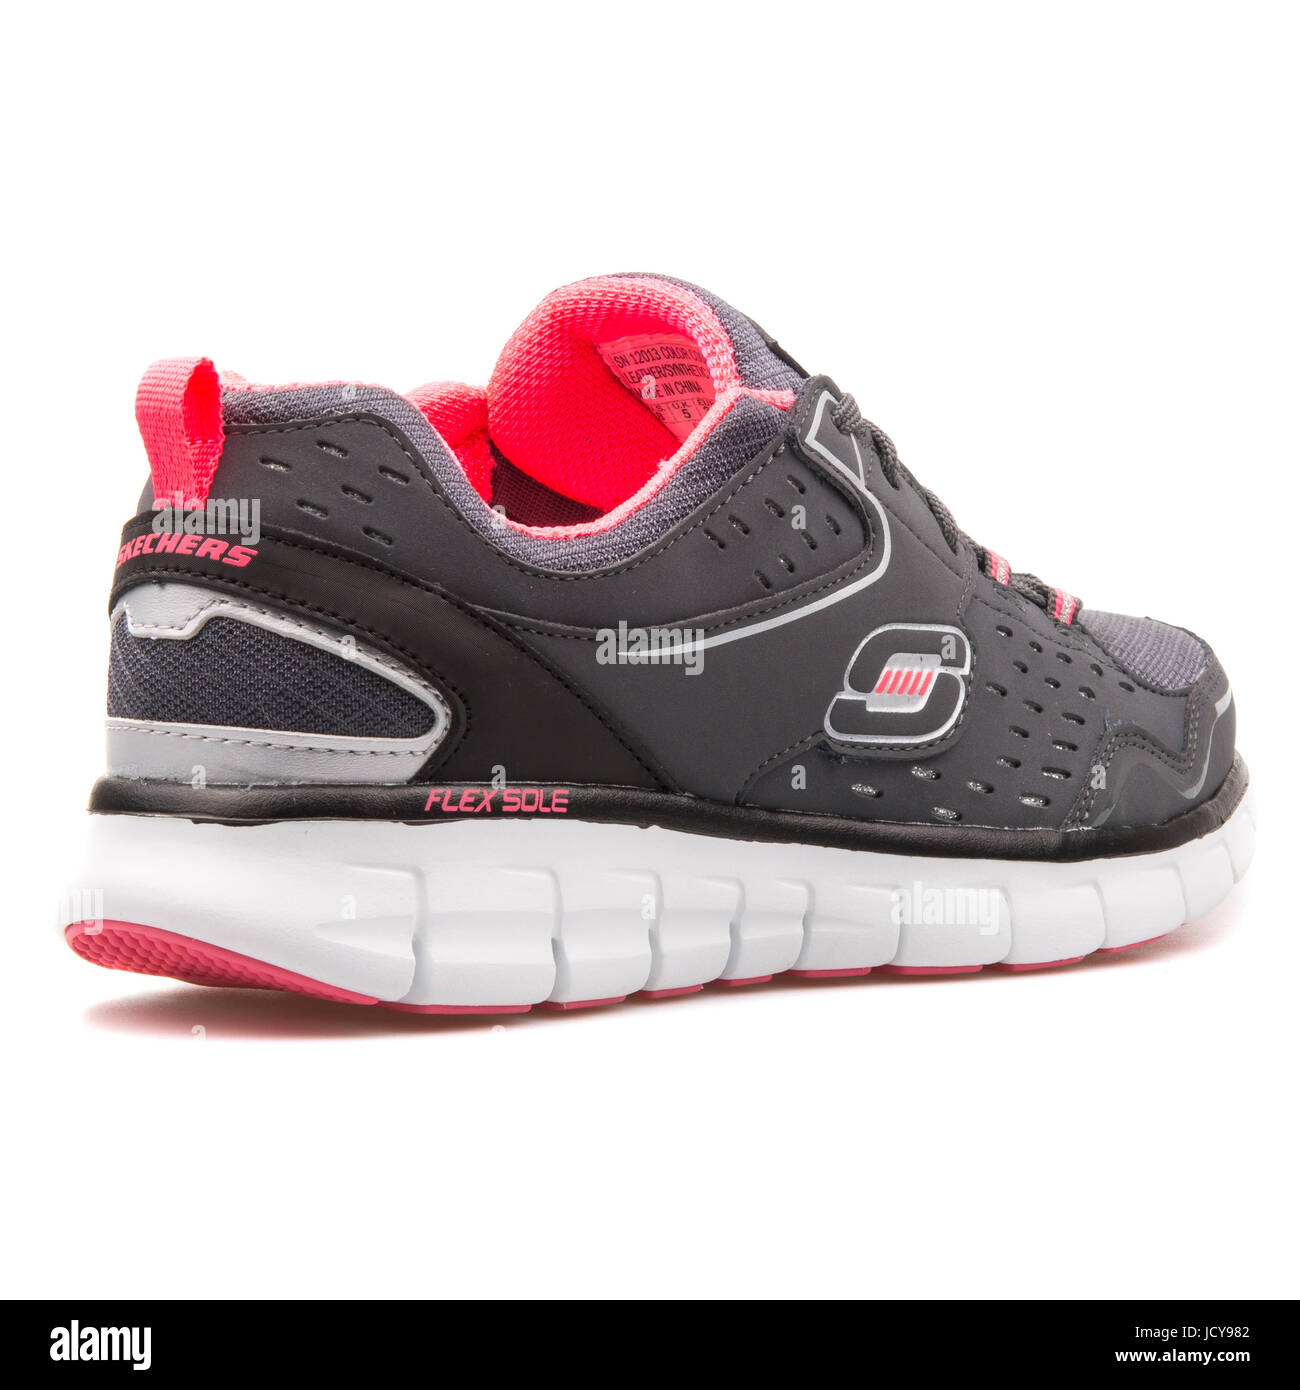 007cd86fb28d Skechers Synergy-Front Row Charcoal Black Women s Running Shoes - 12013-CCBK